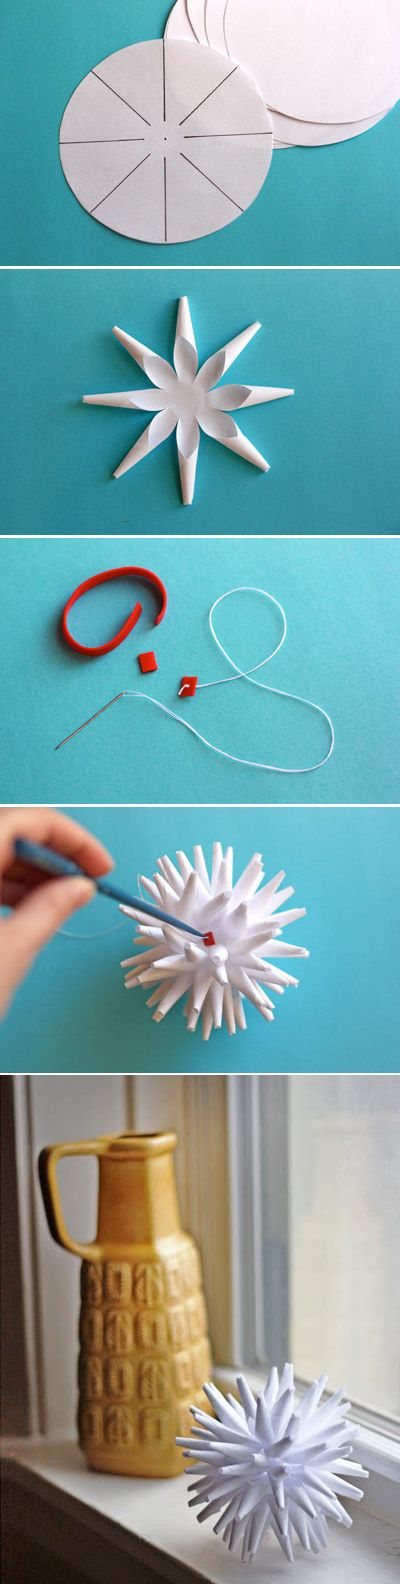 Modern Paper Porcupine Ornament / 40 DIY Home Decor Ideas That Aren't Just For Christmas